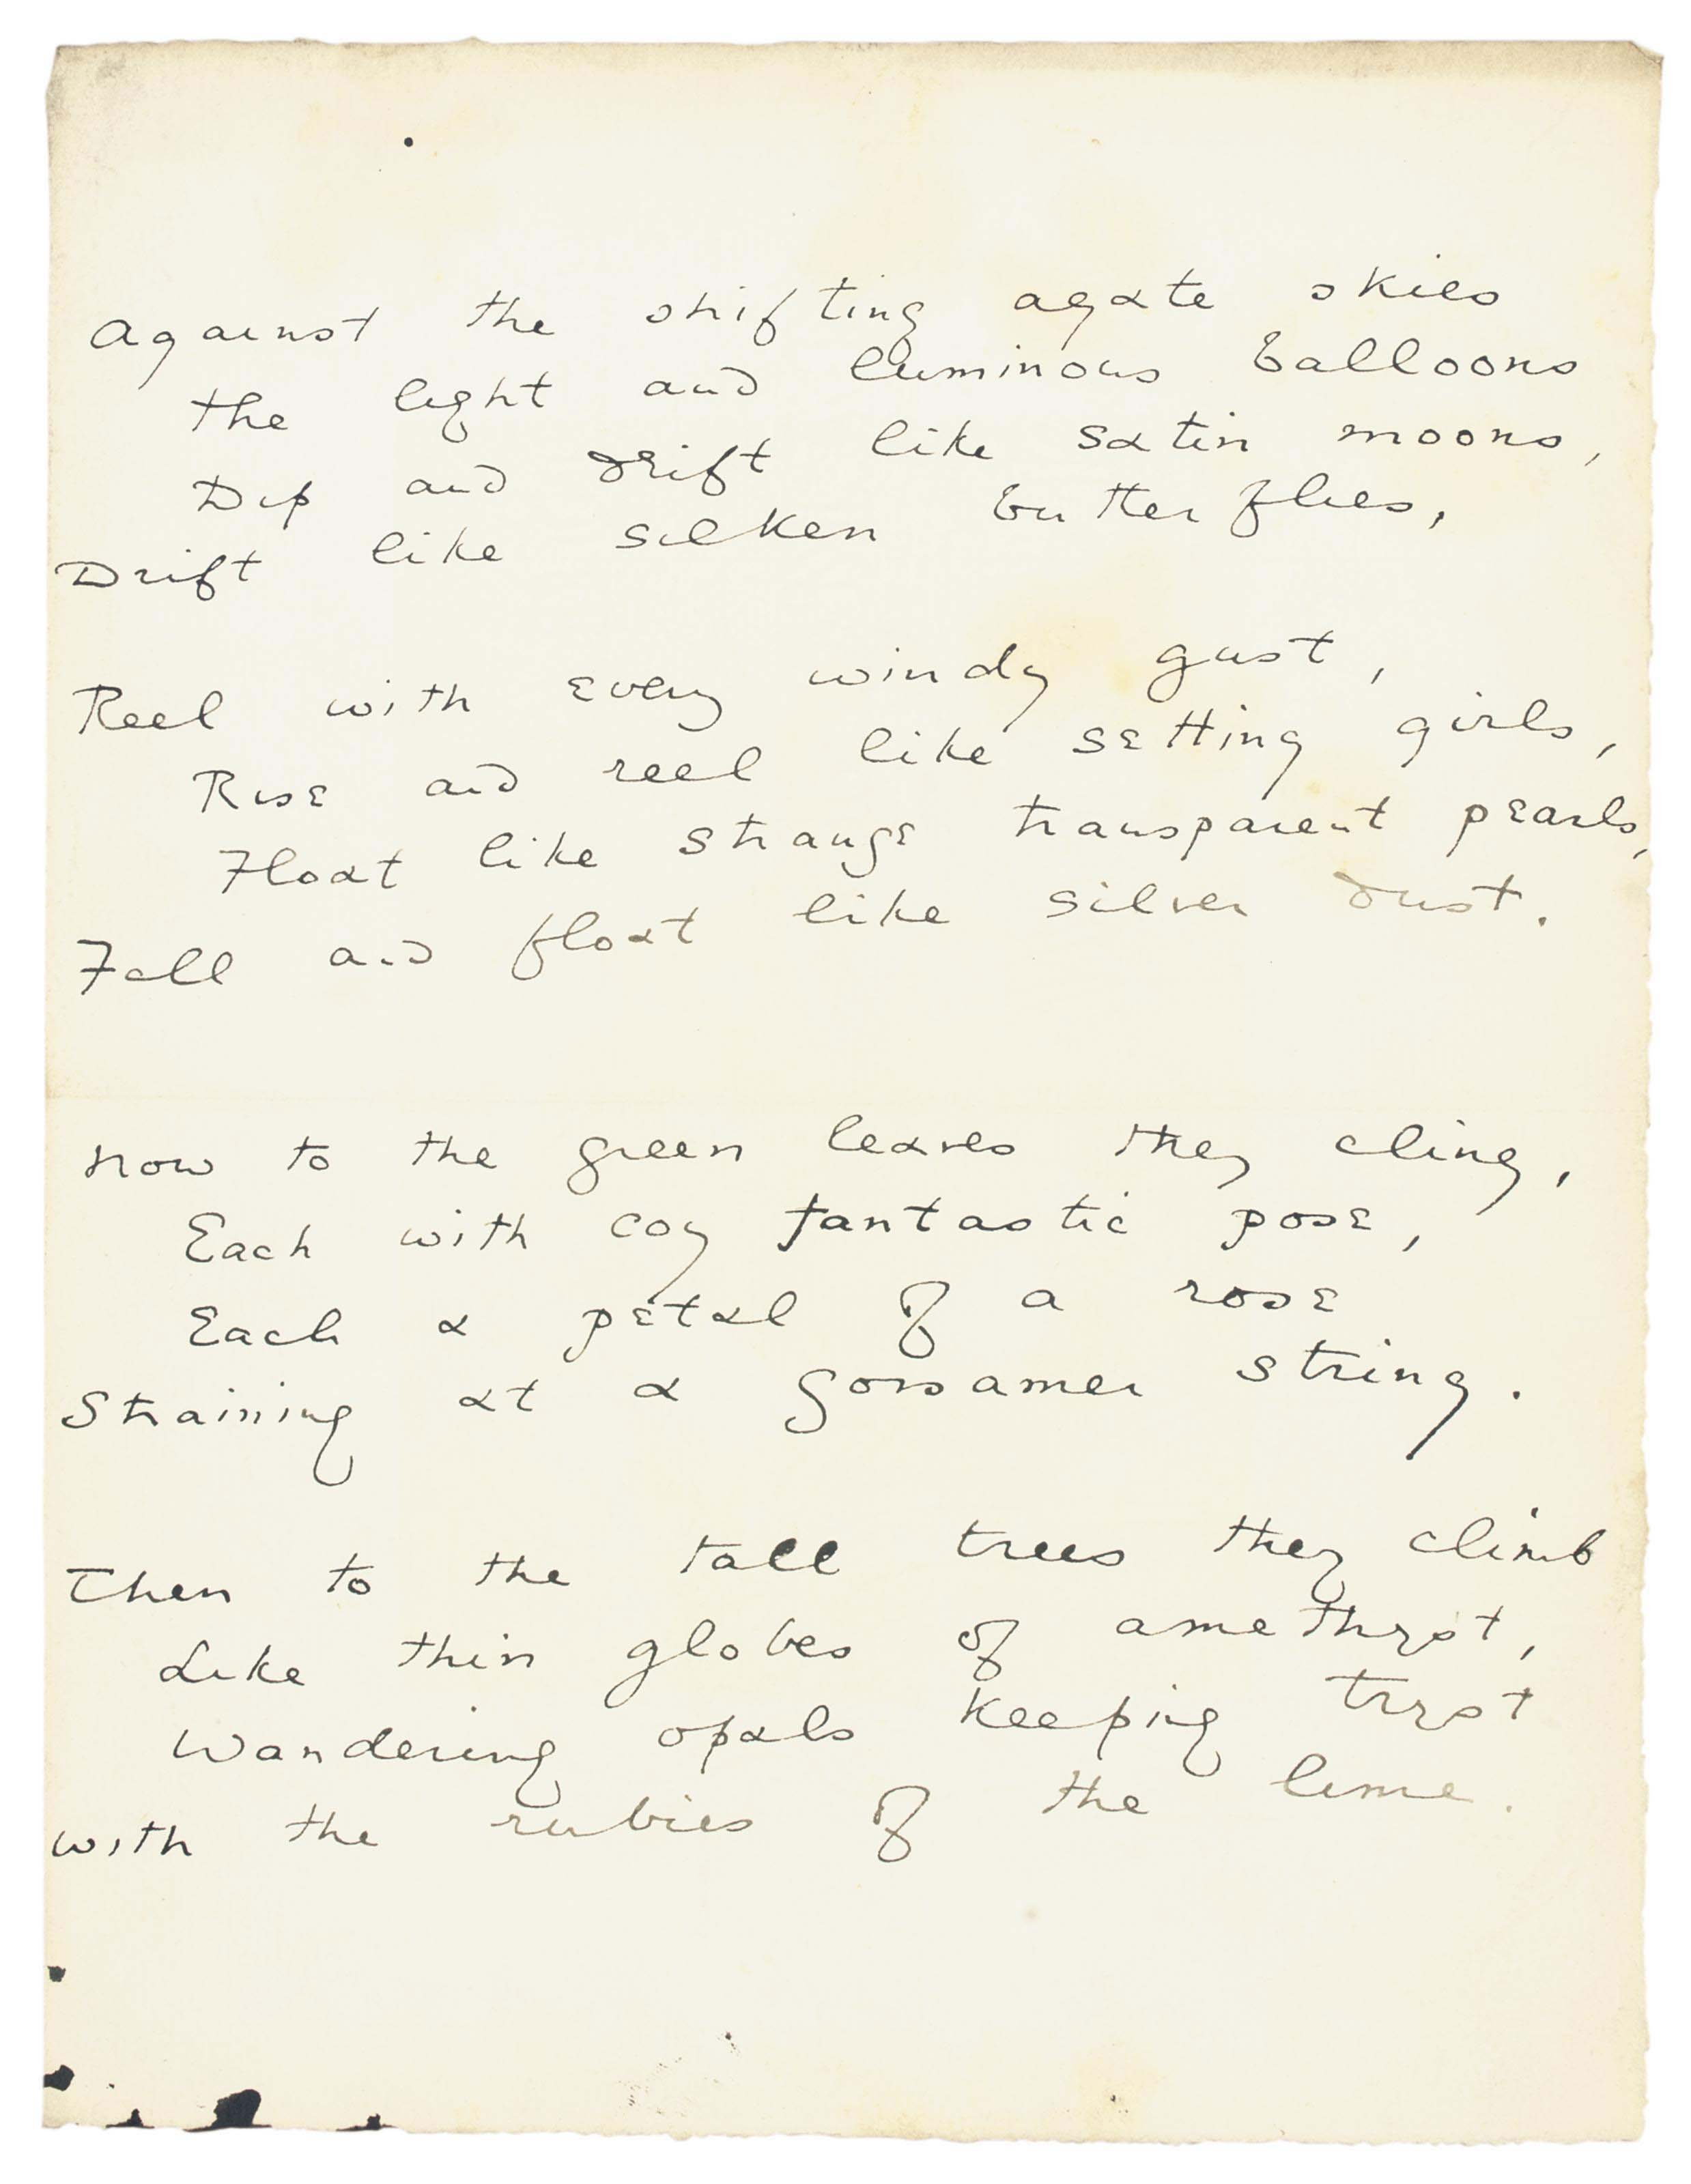 WILDE, Oscar (1854-1900). Autograph manuscript of the poem, 'Against the shifting agate skies' ('Les Ballons'), n.d., four stanzas of four lines each on one page, 4to (229 x 176mm), (minor soiling and spotting), tipped into an album, olive morocco gilt by Wood, London. Provenance: John B. Stetson, Jr -- his sale, Anderson Galleries, 23 April 1920, lot 212 -- private collection.